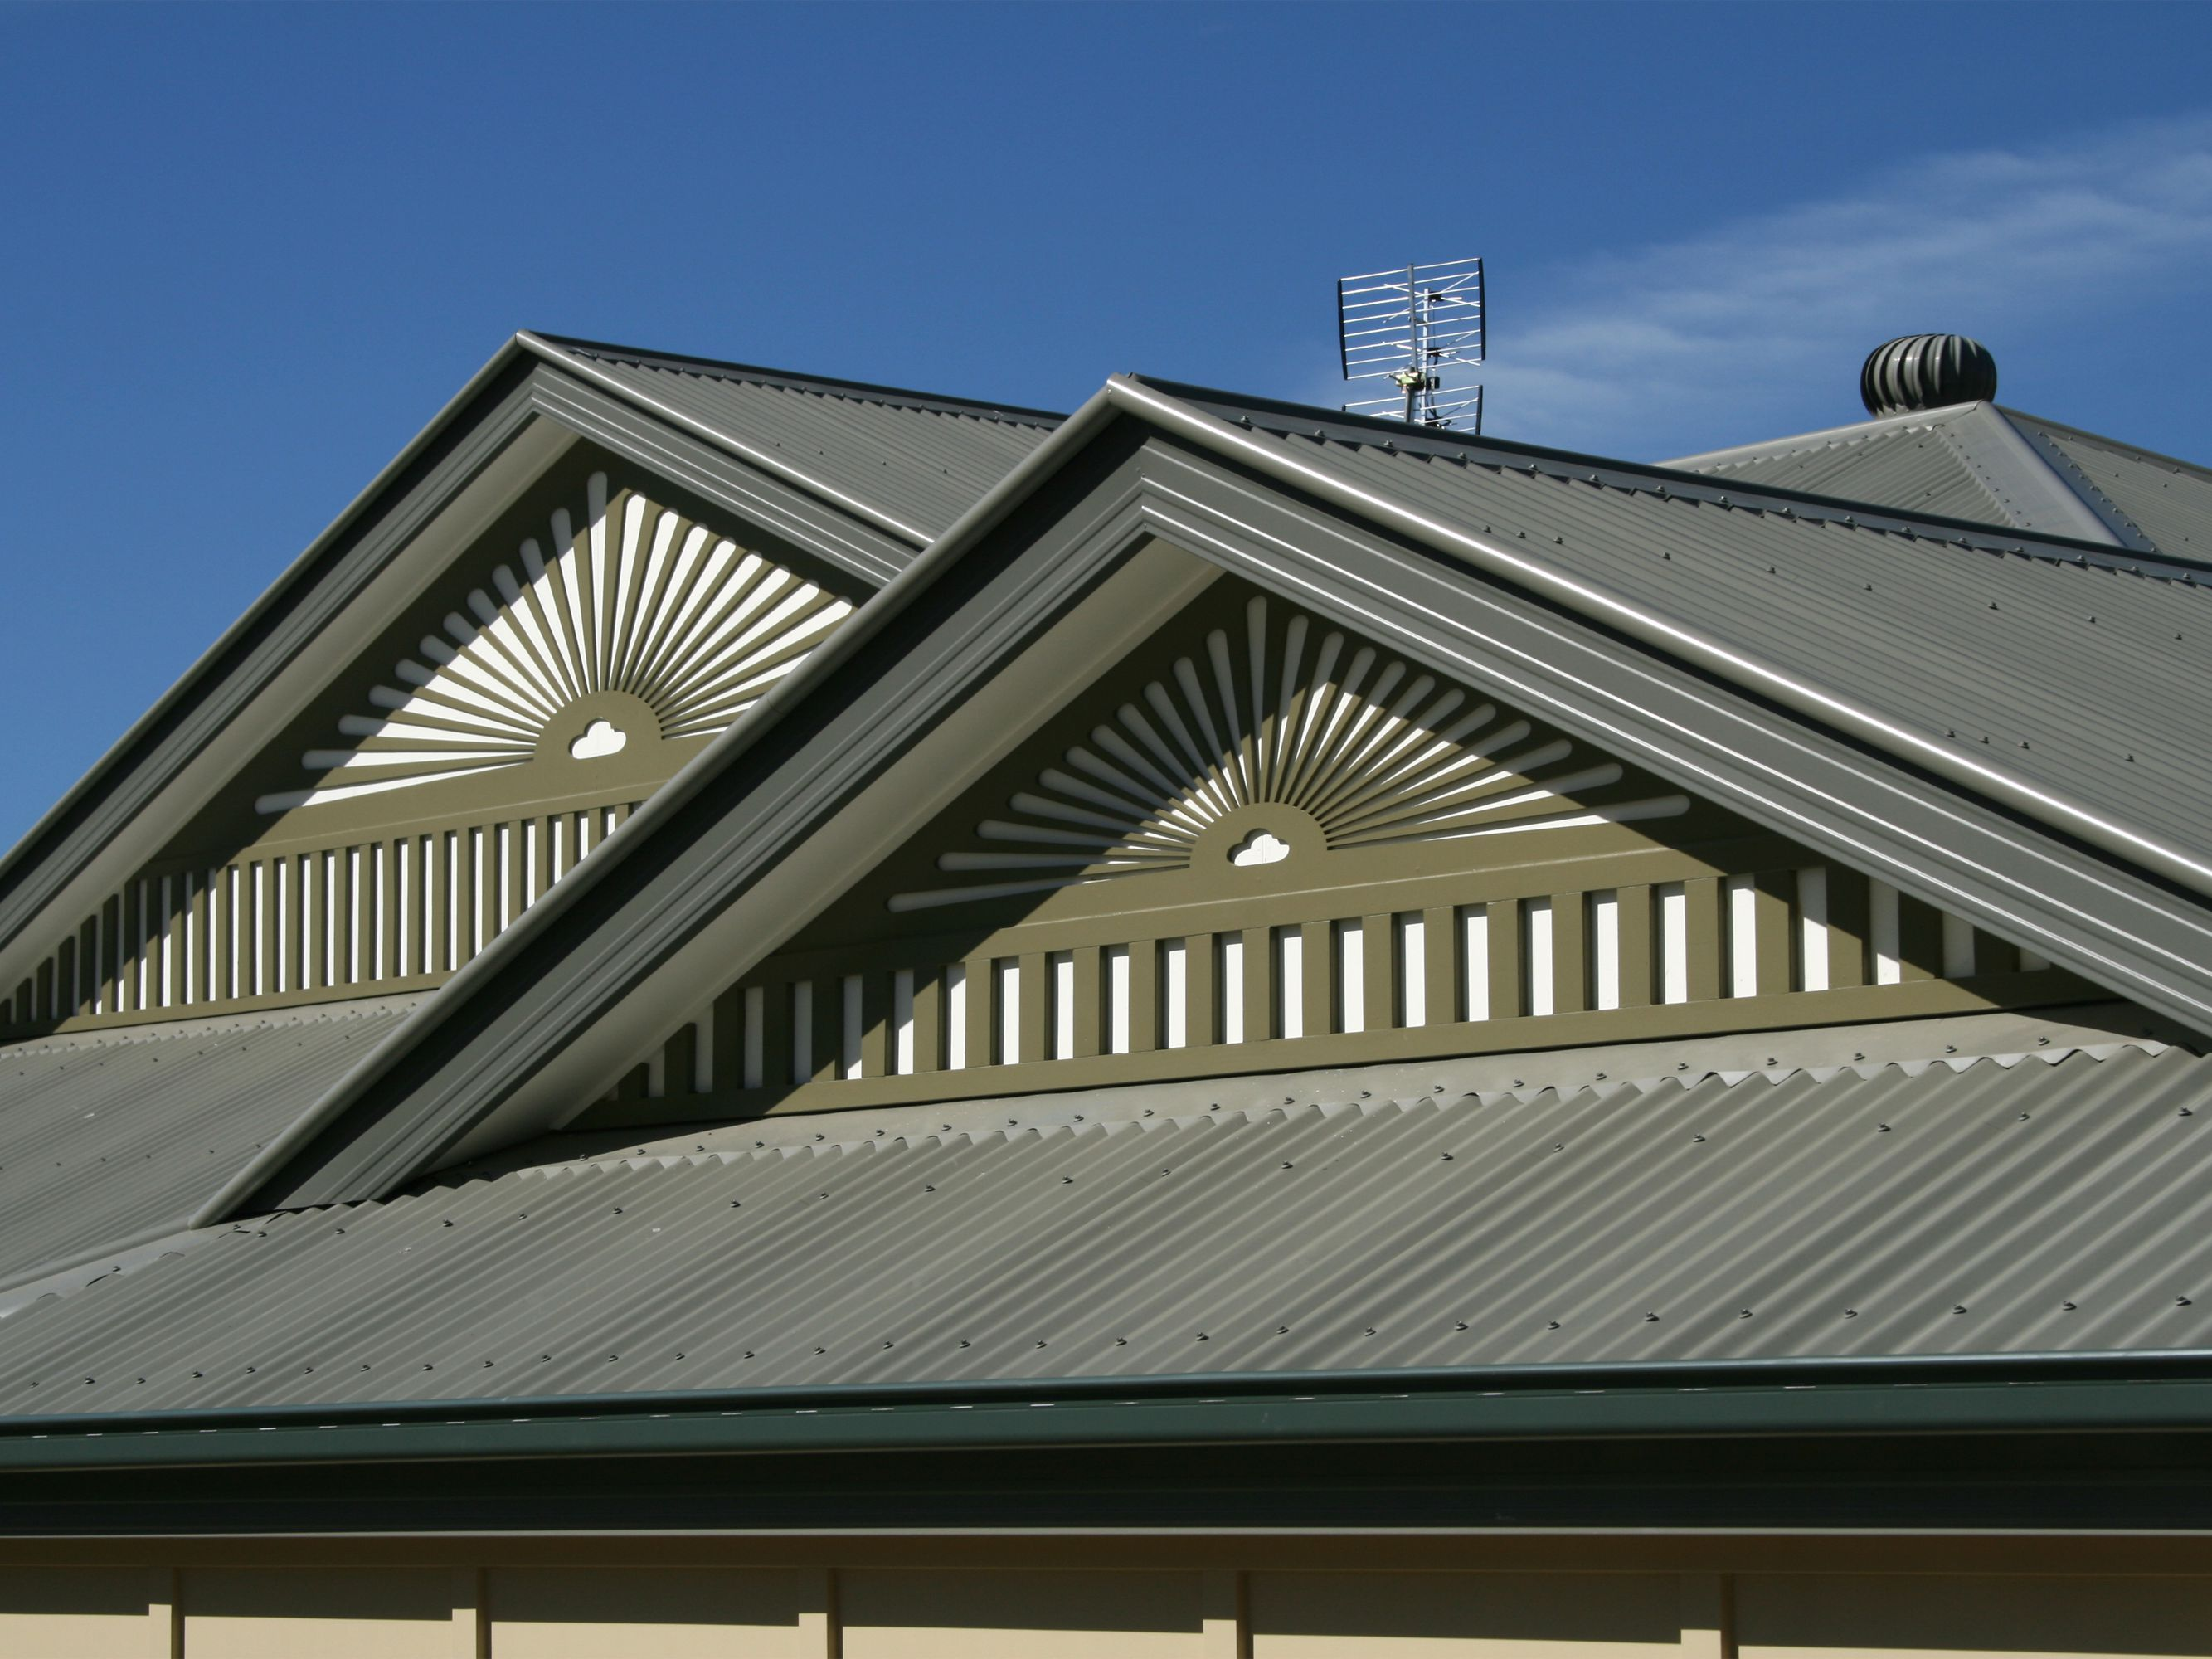 2020 Metal Roofing Prices Per Sq Ft Total Cost Installed Vs Shingles Modern Farmhouse Exterior Contemporary Farmhouse Modern Farmhouse Design